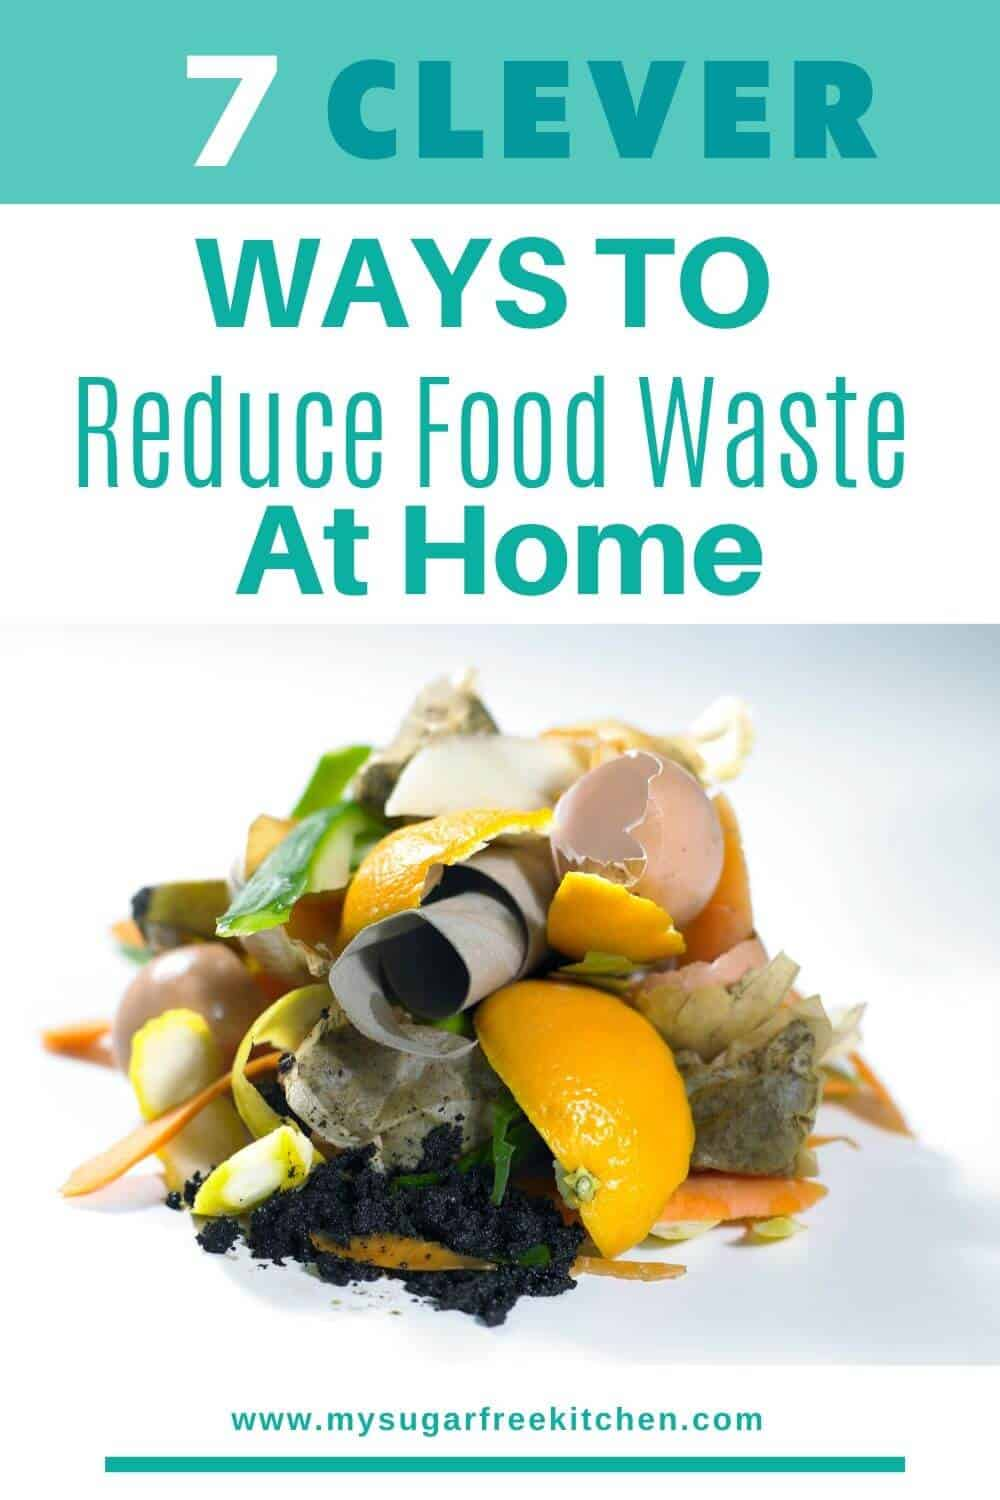 How to reduce food waste at home